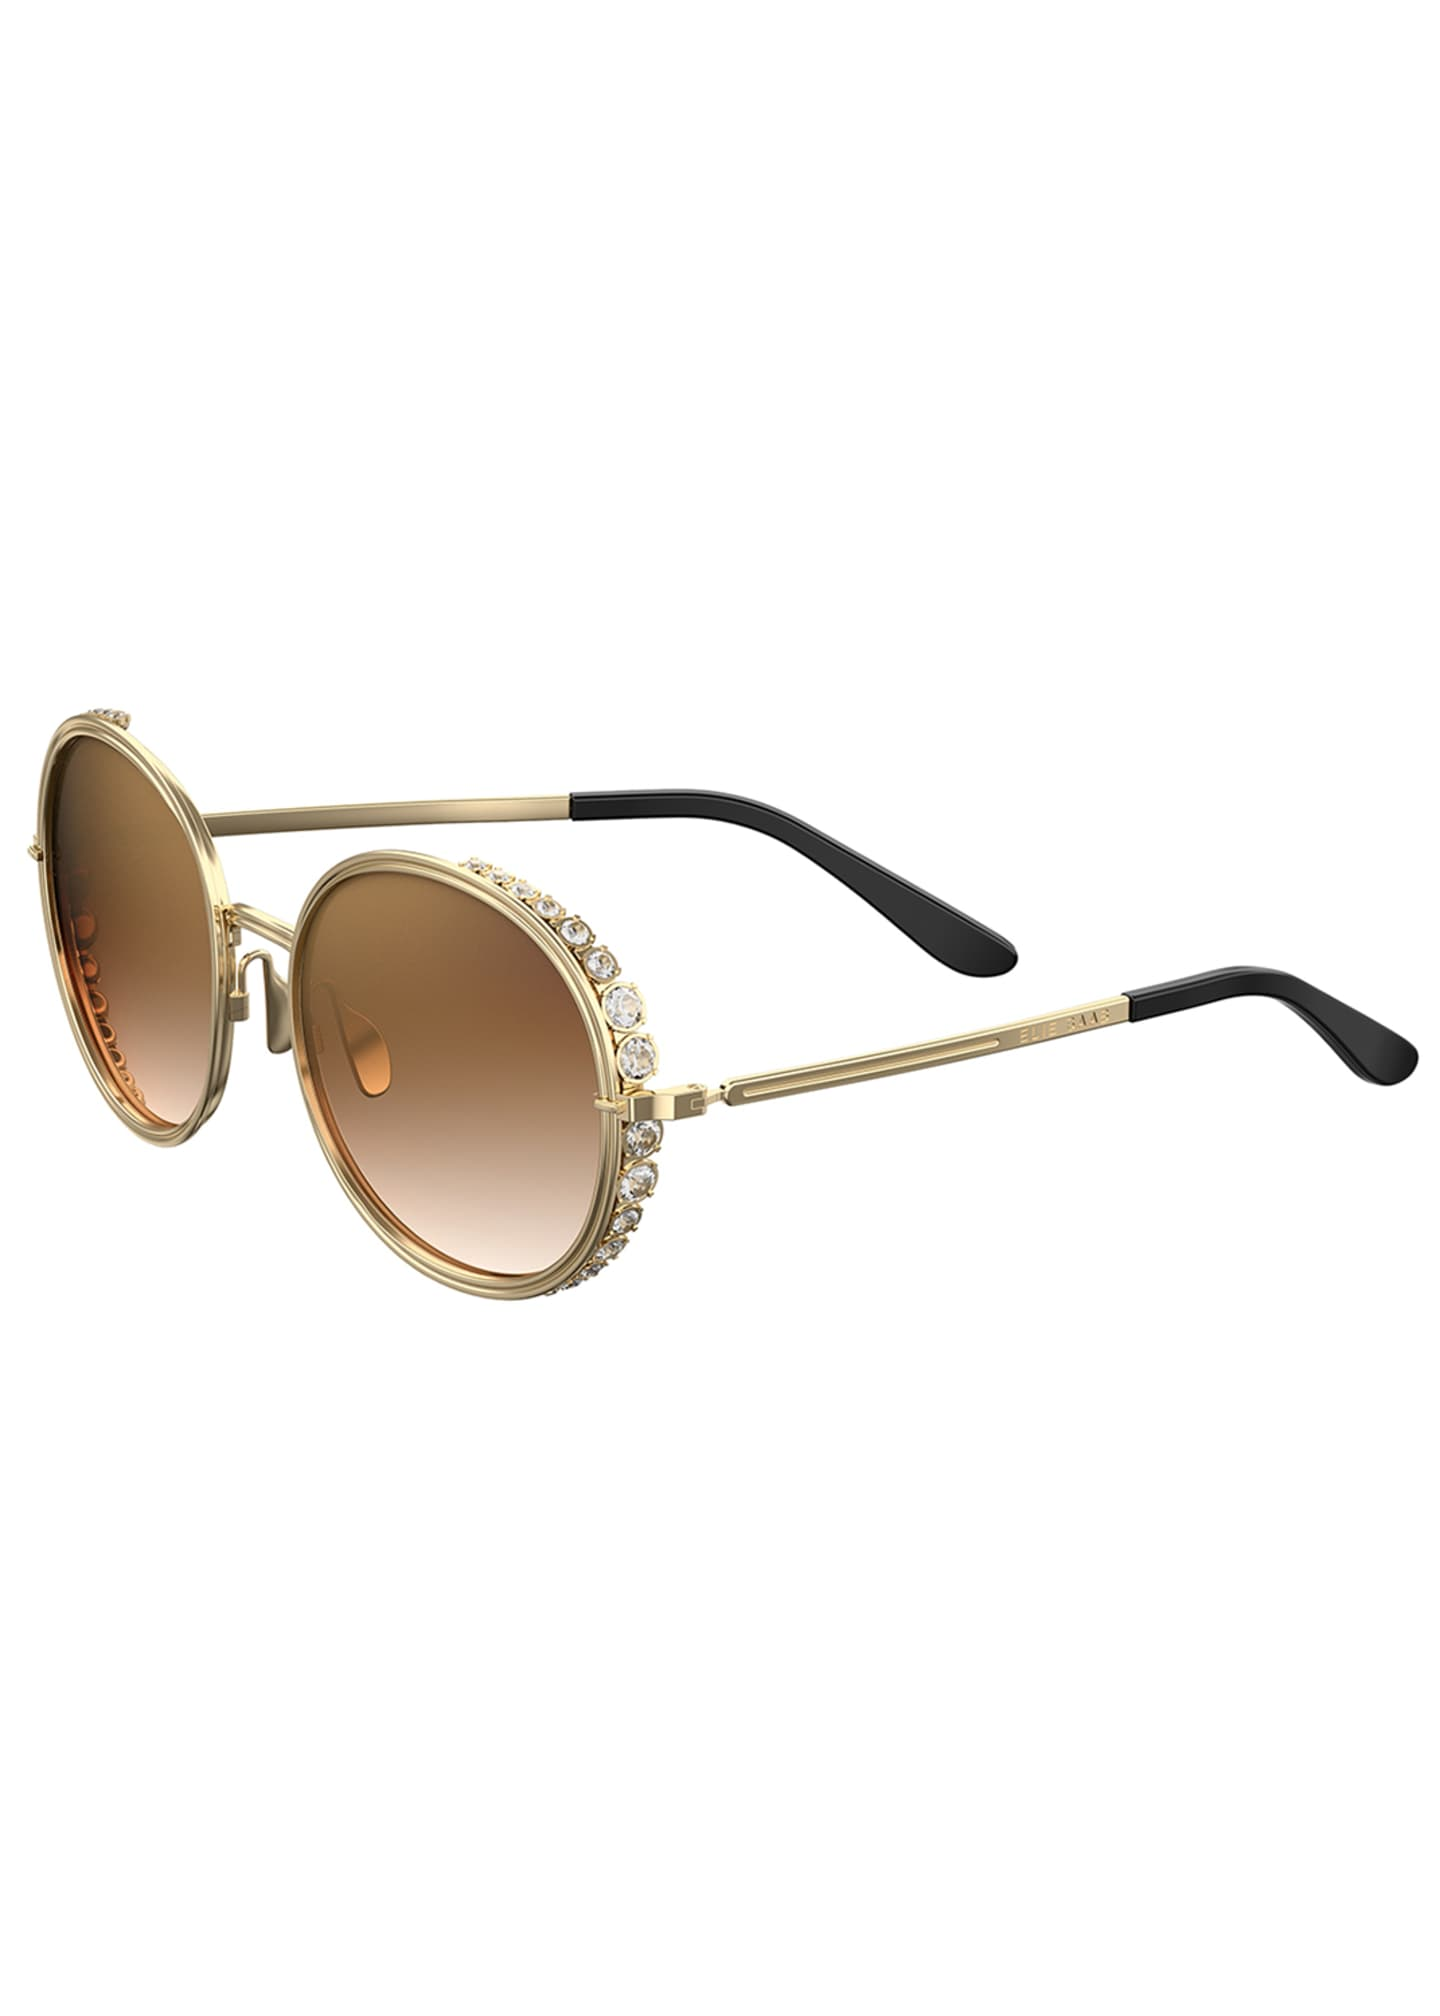 Elie Saab Round Crystal-Trim Sunglasses